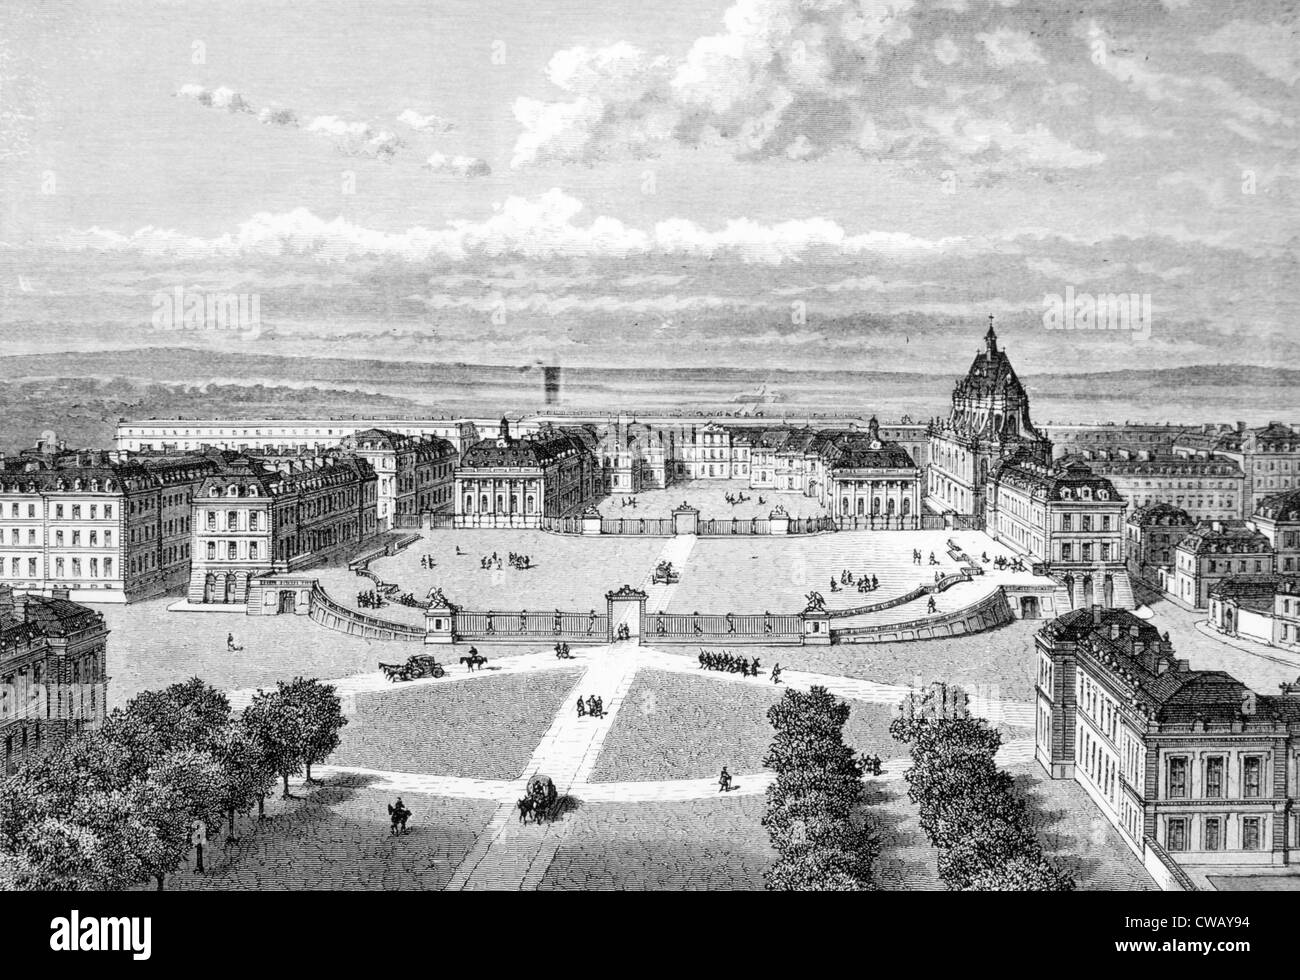 Versailles, c. 19th century. - Stock Image